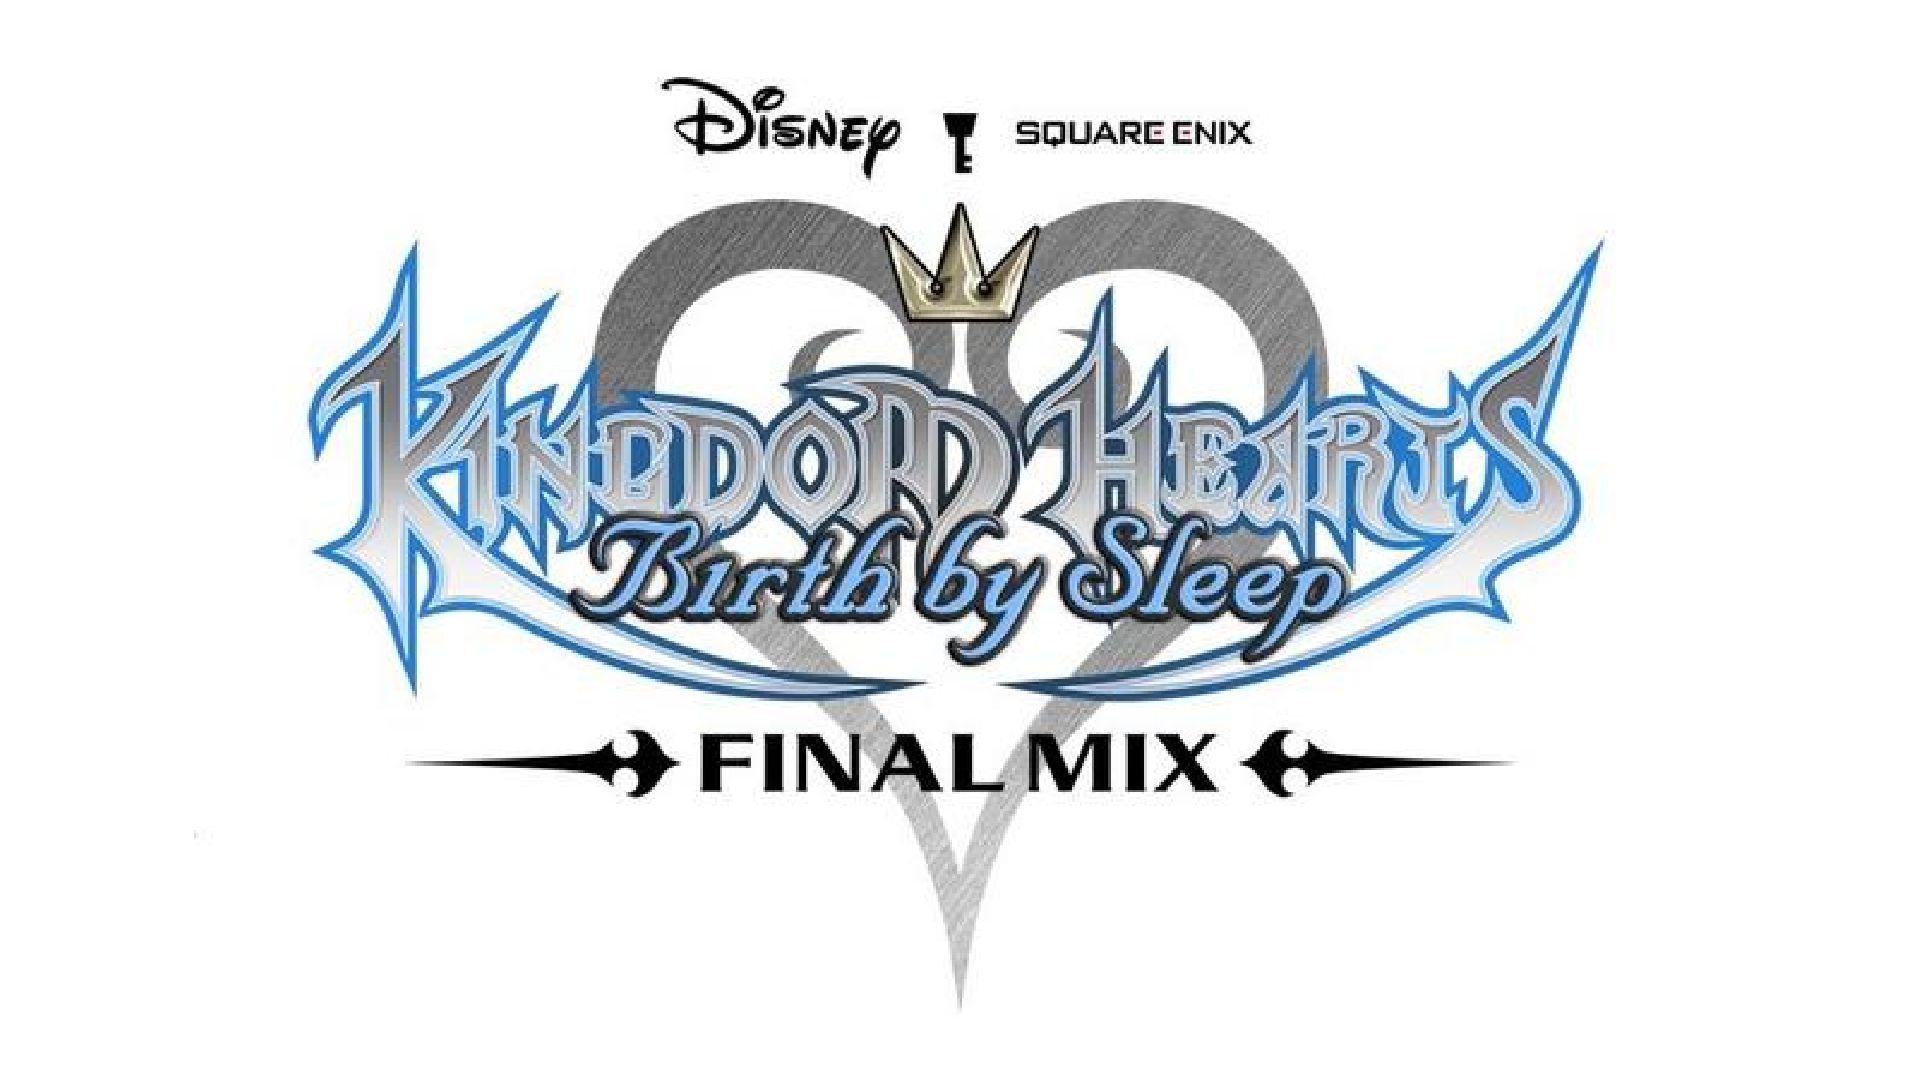 Kingdom Hearts: Birth By Sleep Final Mix Logo